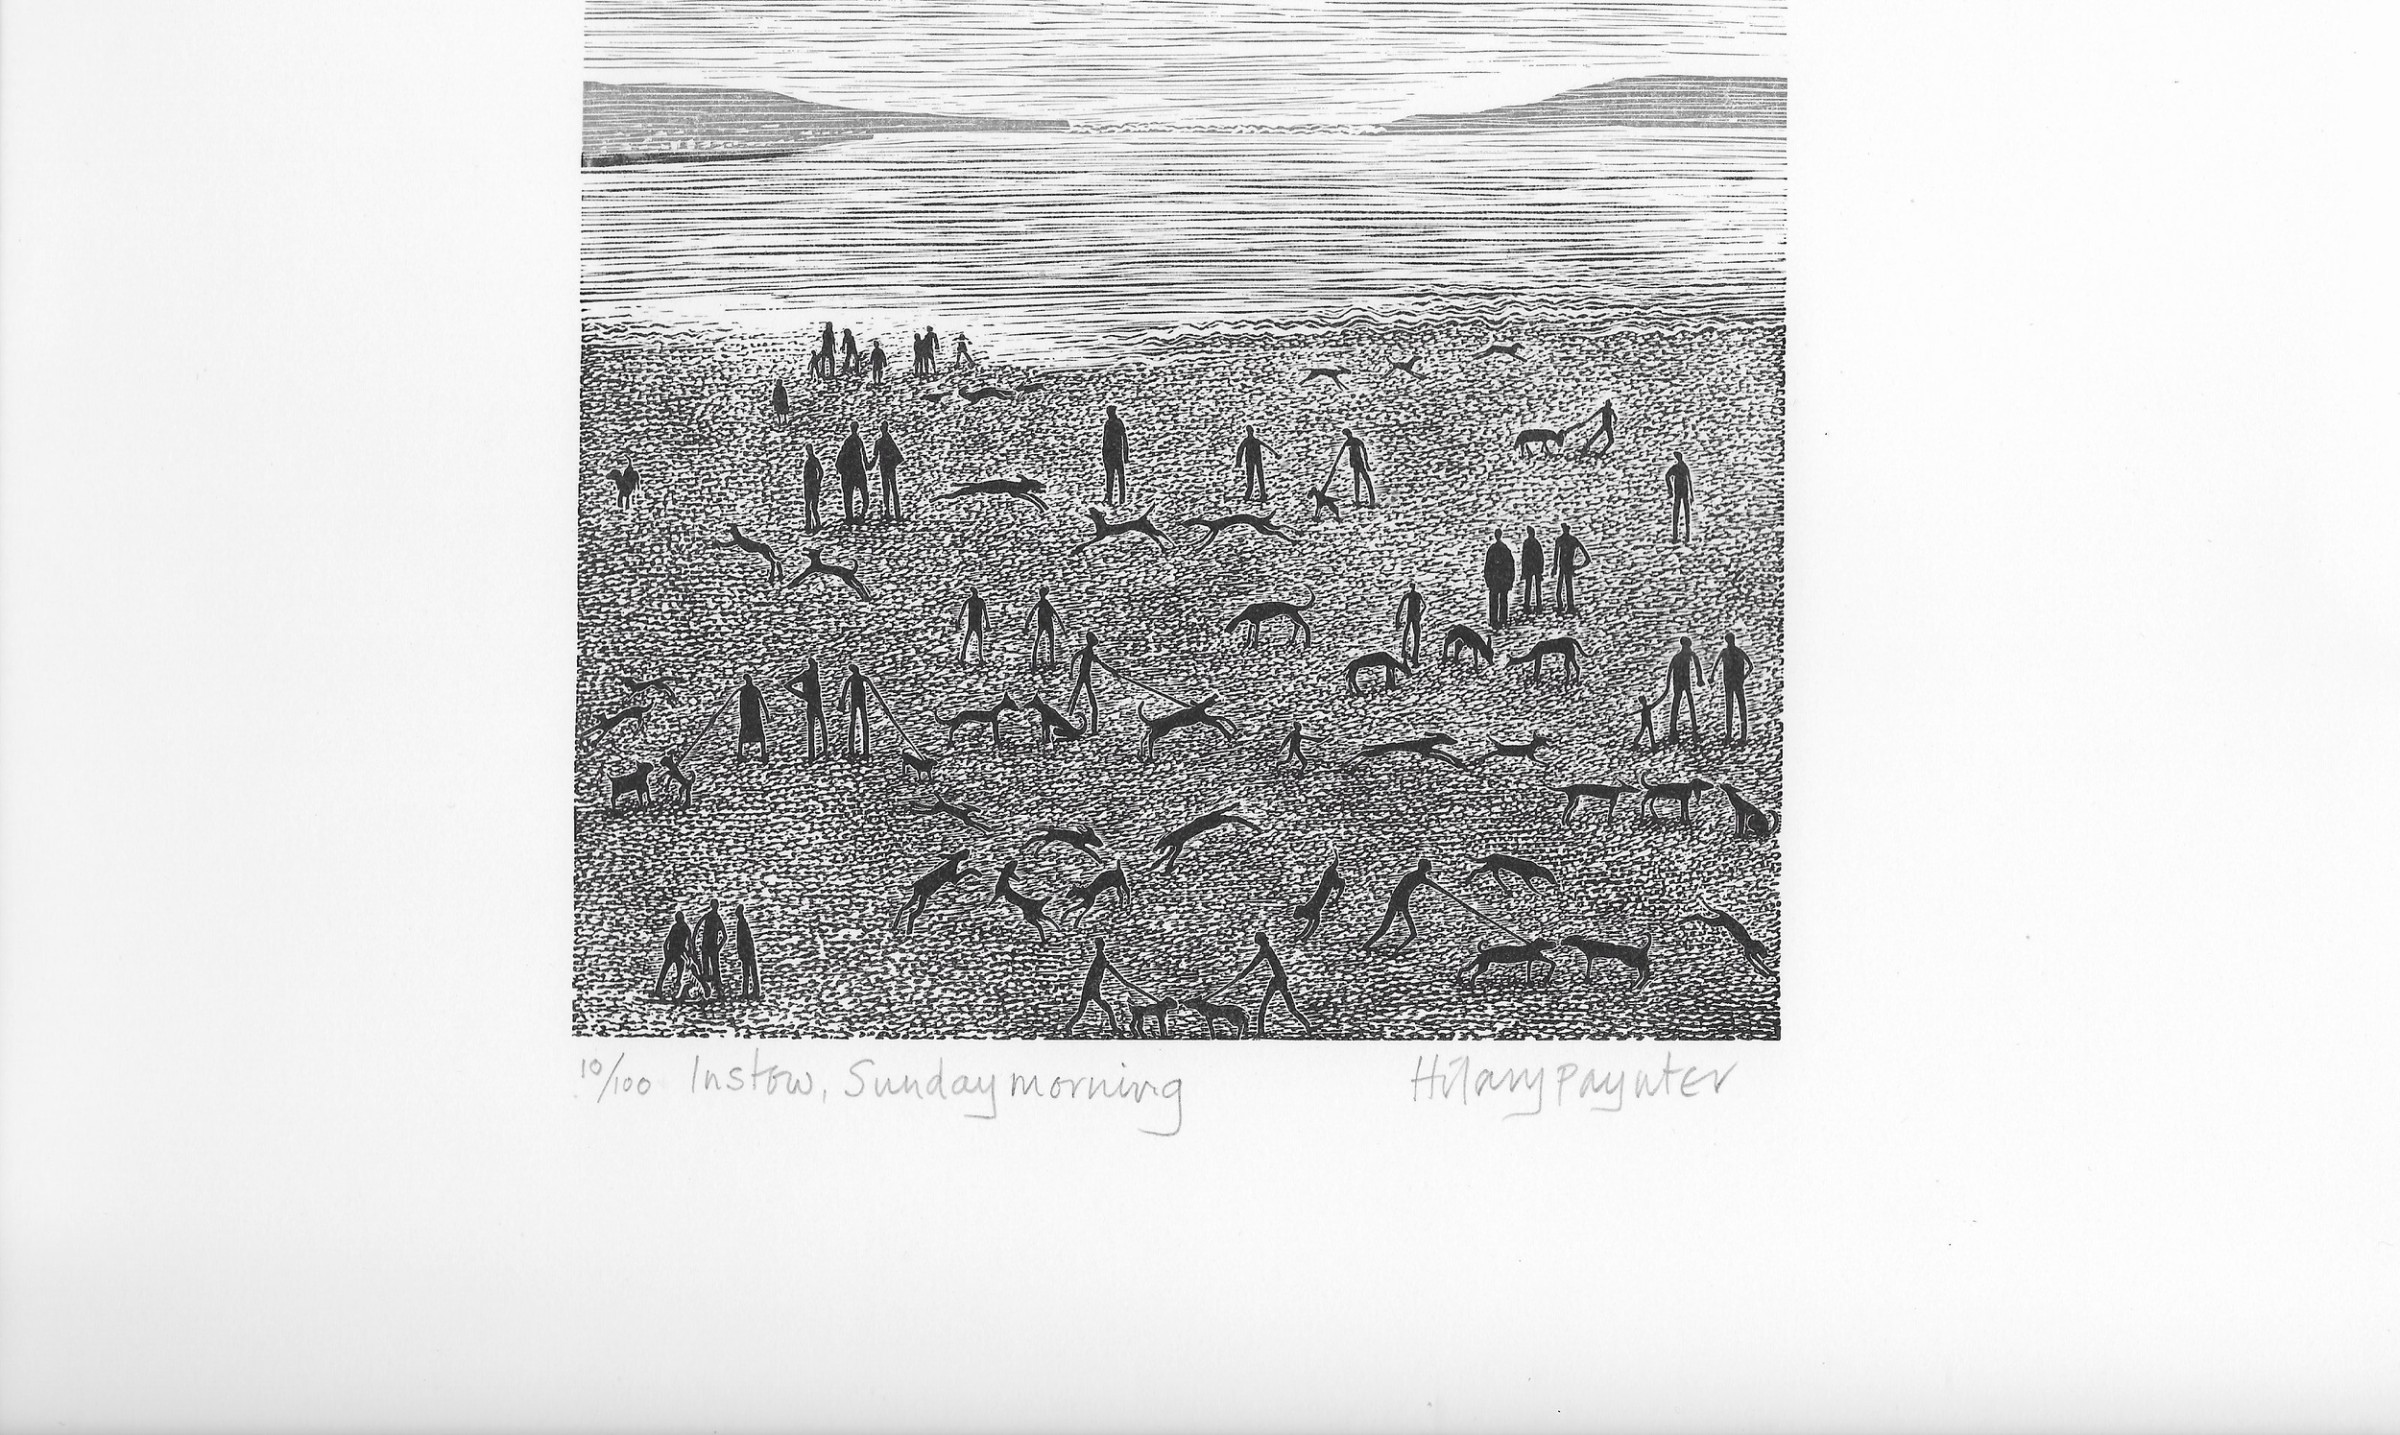 "<span class=""link fancybox-details-link""><a href=""/exhibitions/18/works/image_standalone1039/"">View Detail Page</a></span><p>Hilary Paynter PPRE Hon RWS</p><p>Instow, Sunday Morning</p><p>wood engraving</p><p>35 x 35cm</p><p>£140 framed</p><p>£100 unframed</p>"